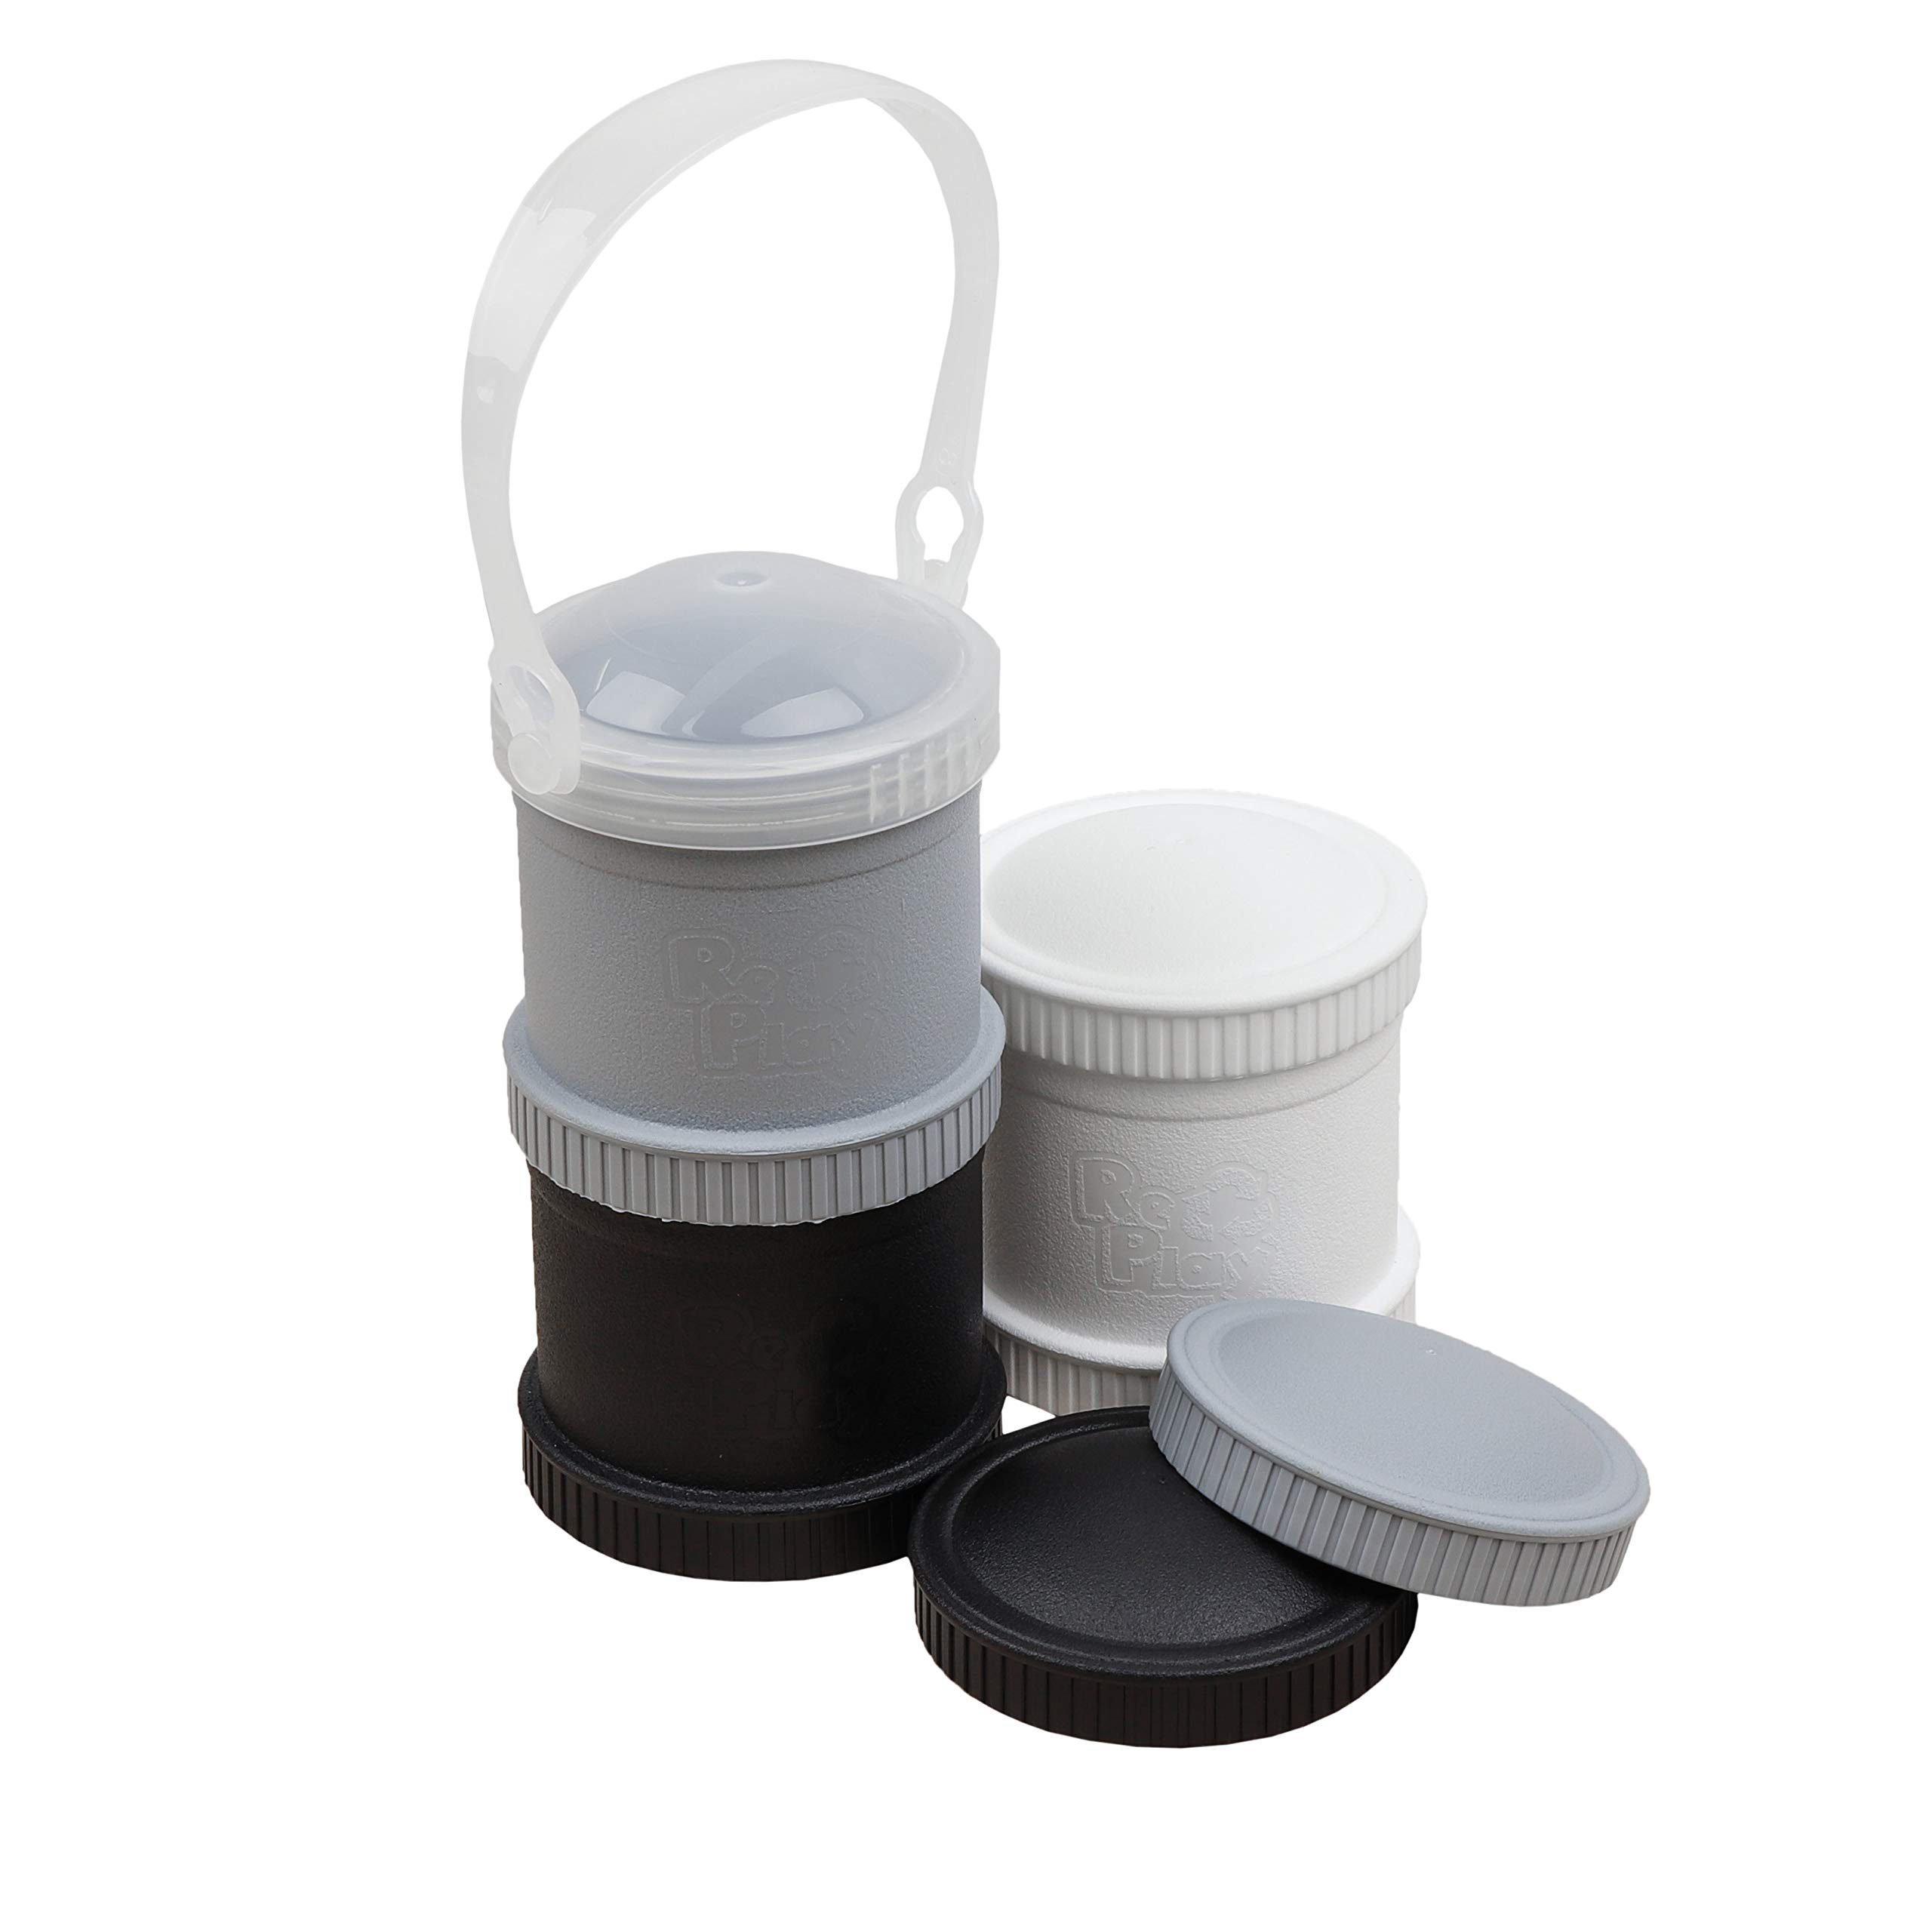 Re-Play Made in The USA 7 Piece Stackable Food and Snack Storage Containers for Babies, Toddlers and Kids of All Ages (Monochrome)